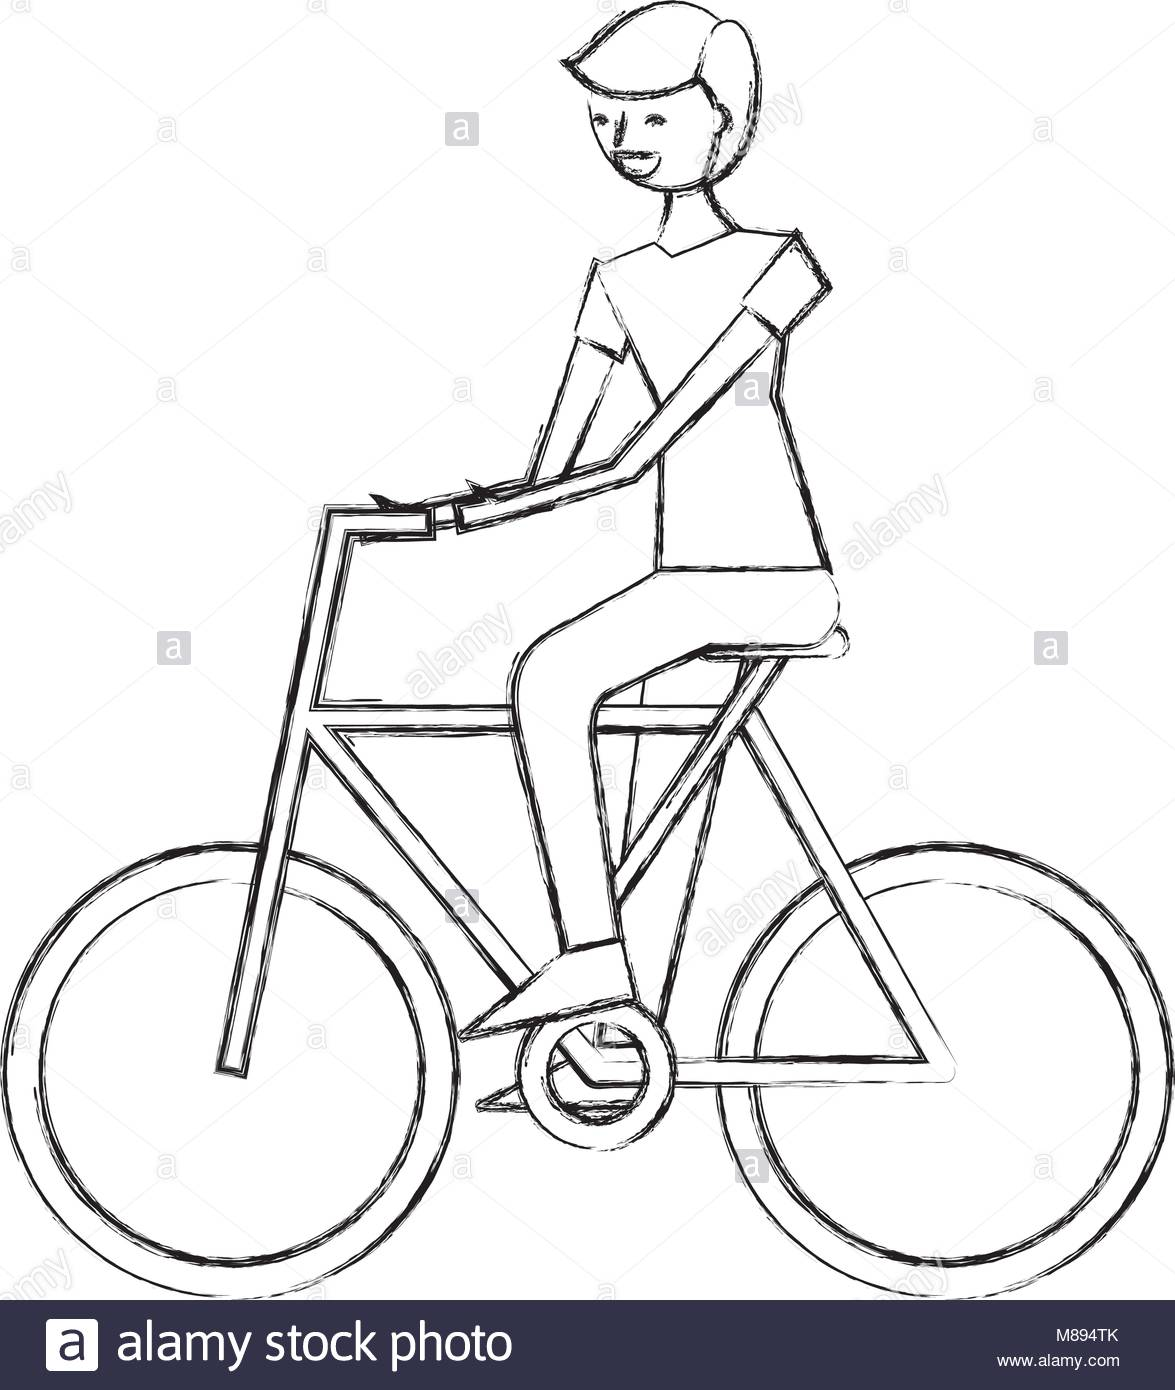 1175x1390 Cycling Bicycle Sketch Stock Photos Amp Cycling Bicycle Sketch Stock